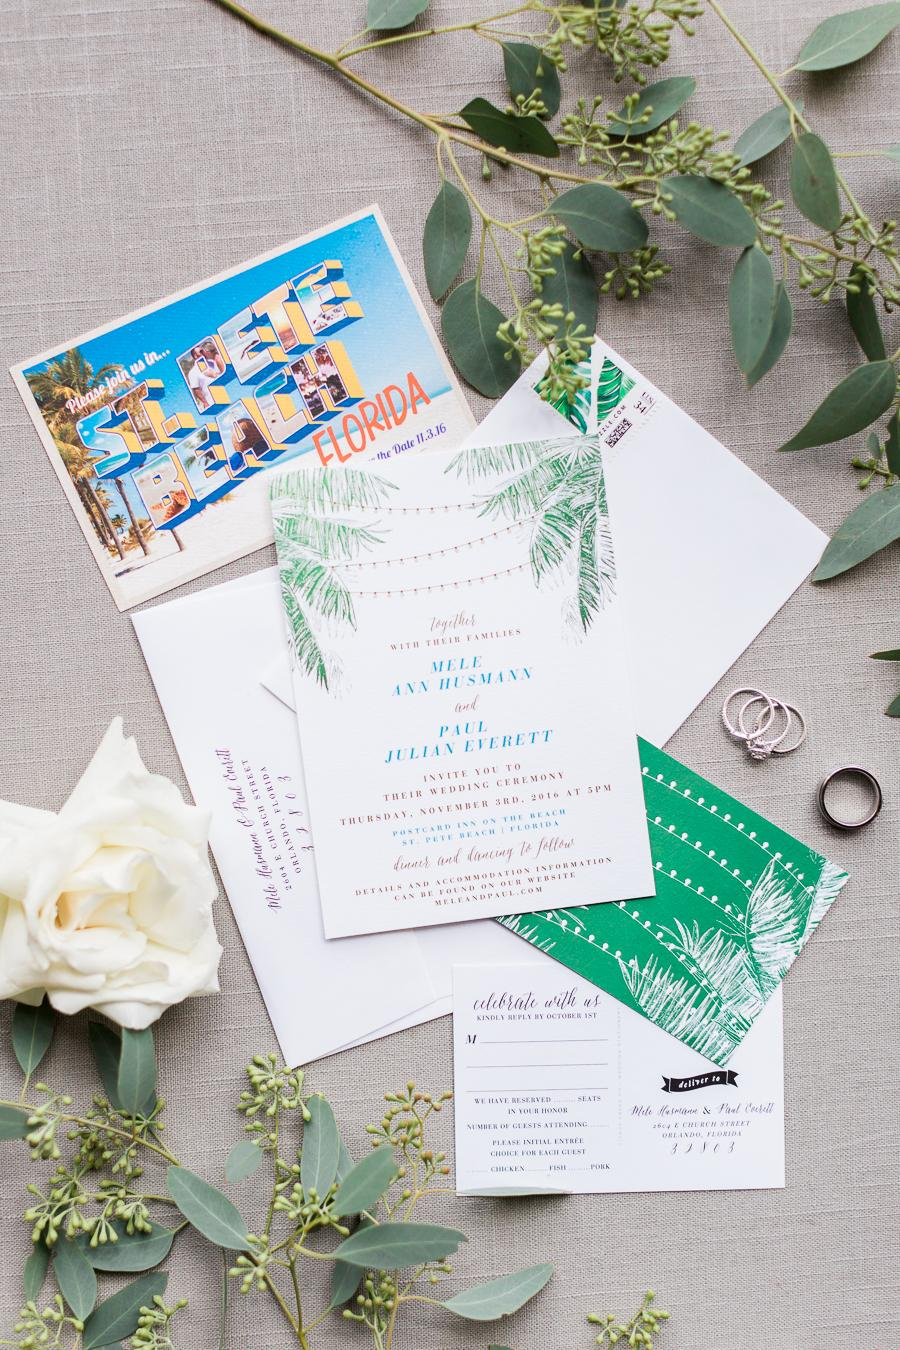 Destination Beach Wedding Invitation Florida St.Pete Tropical Postcard Inn Palm Tree String Lights Citrus Press Co